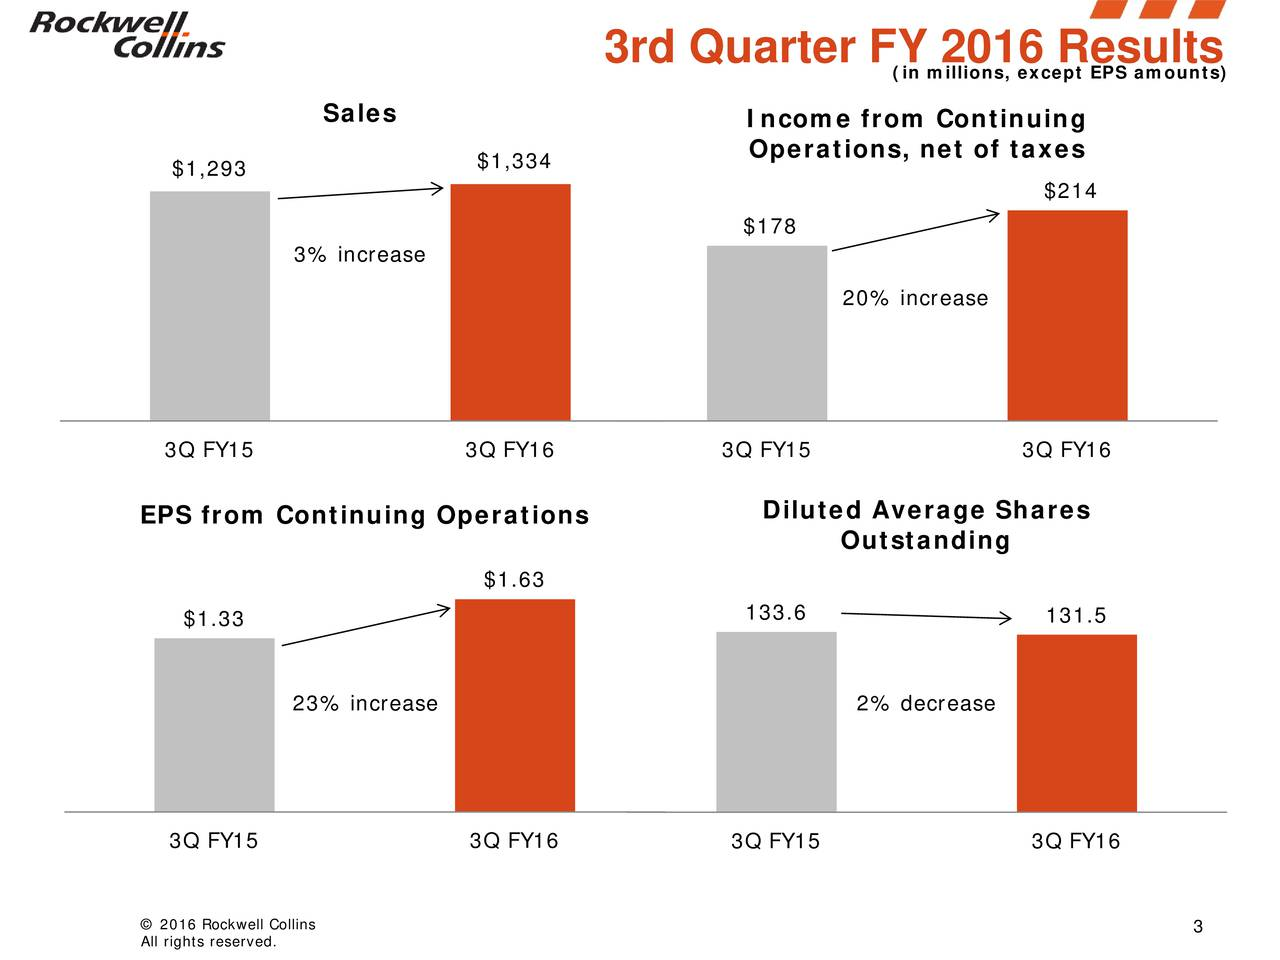 (in millions, except EPS amounts) Sales Income from Continuing Operations, net of taxes $1,293 $1,334 $214 $178 3% increase 20% increase 3Q FY15 3Q FY16 3Q FY15 3Q FY16 EPS from Continuing Operations Diluted Average Shares Outstanding $1.63 $1.33 133.6 131.5 23% increase 2% decrease 3Q FY15 3Q FY16 3Q FY15 3Q FY16 All rights reserved.ins 3